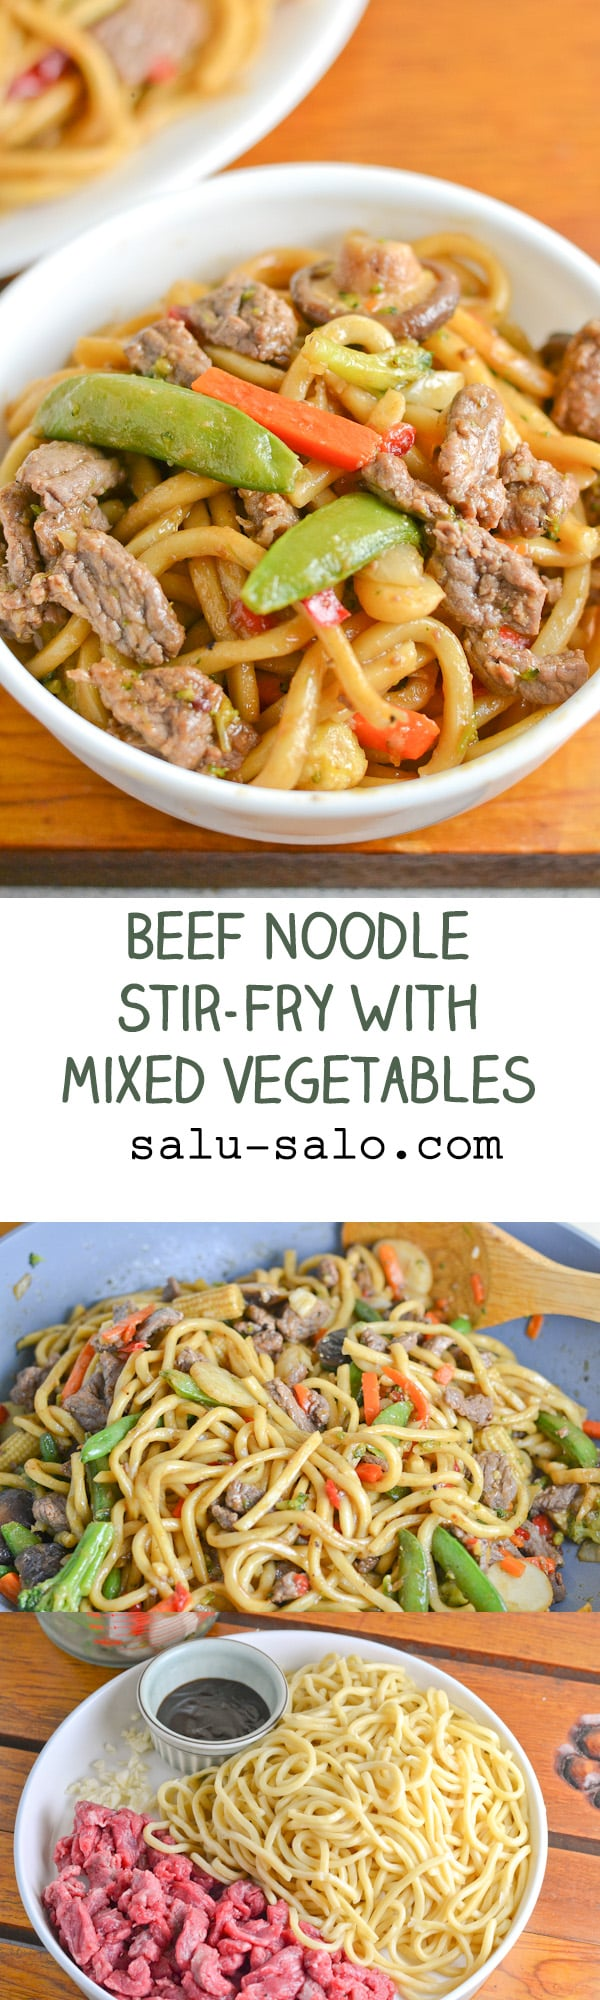 Beef Noodle Stir-Fry with Mixed Vegetables